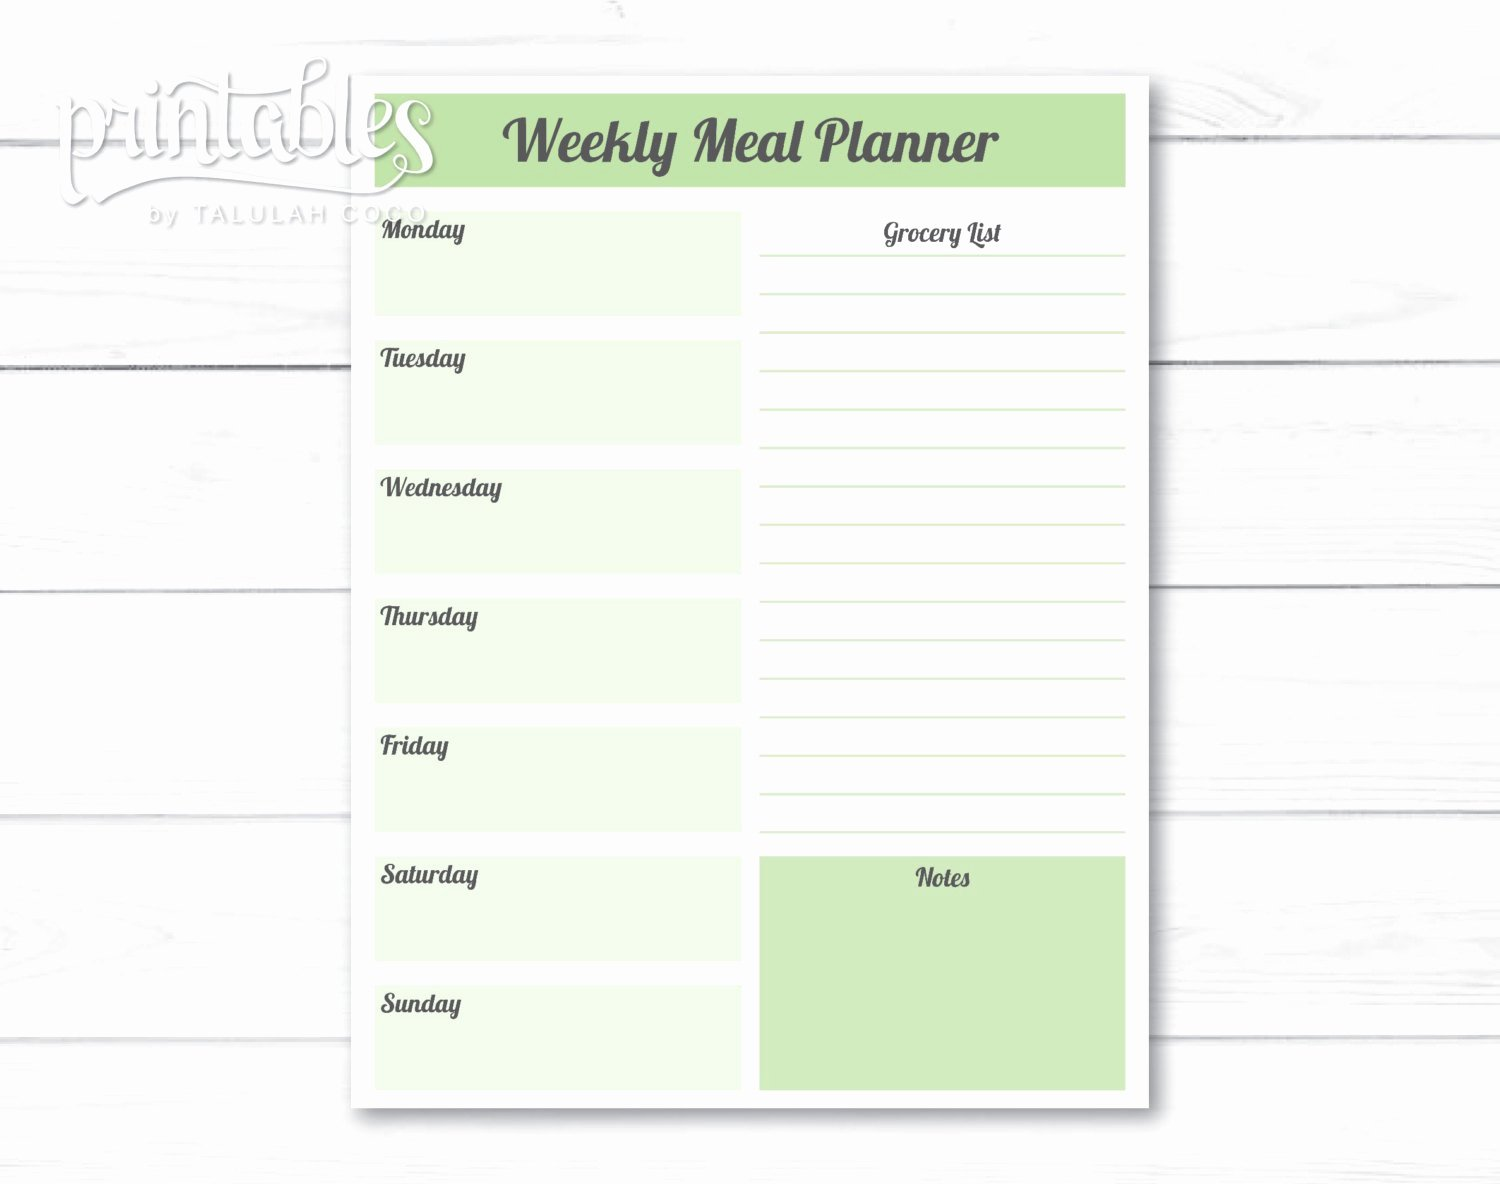 Monthly Meal Plan Template Lovely Editable Meal Planner Template Weekly Meal Planner with